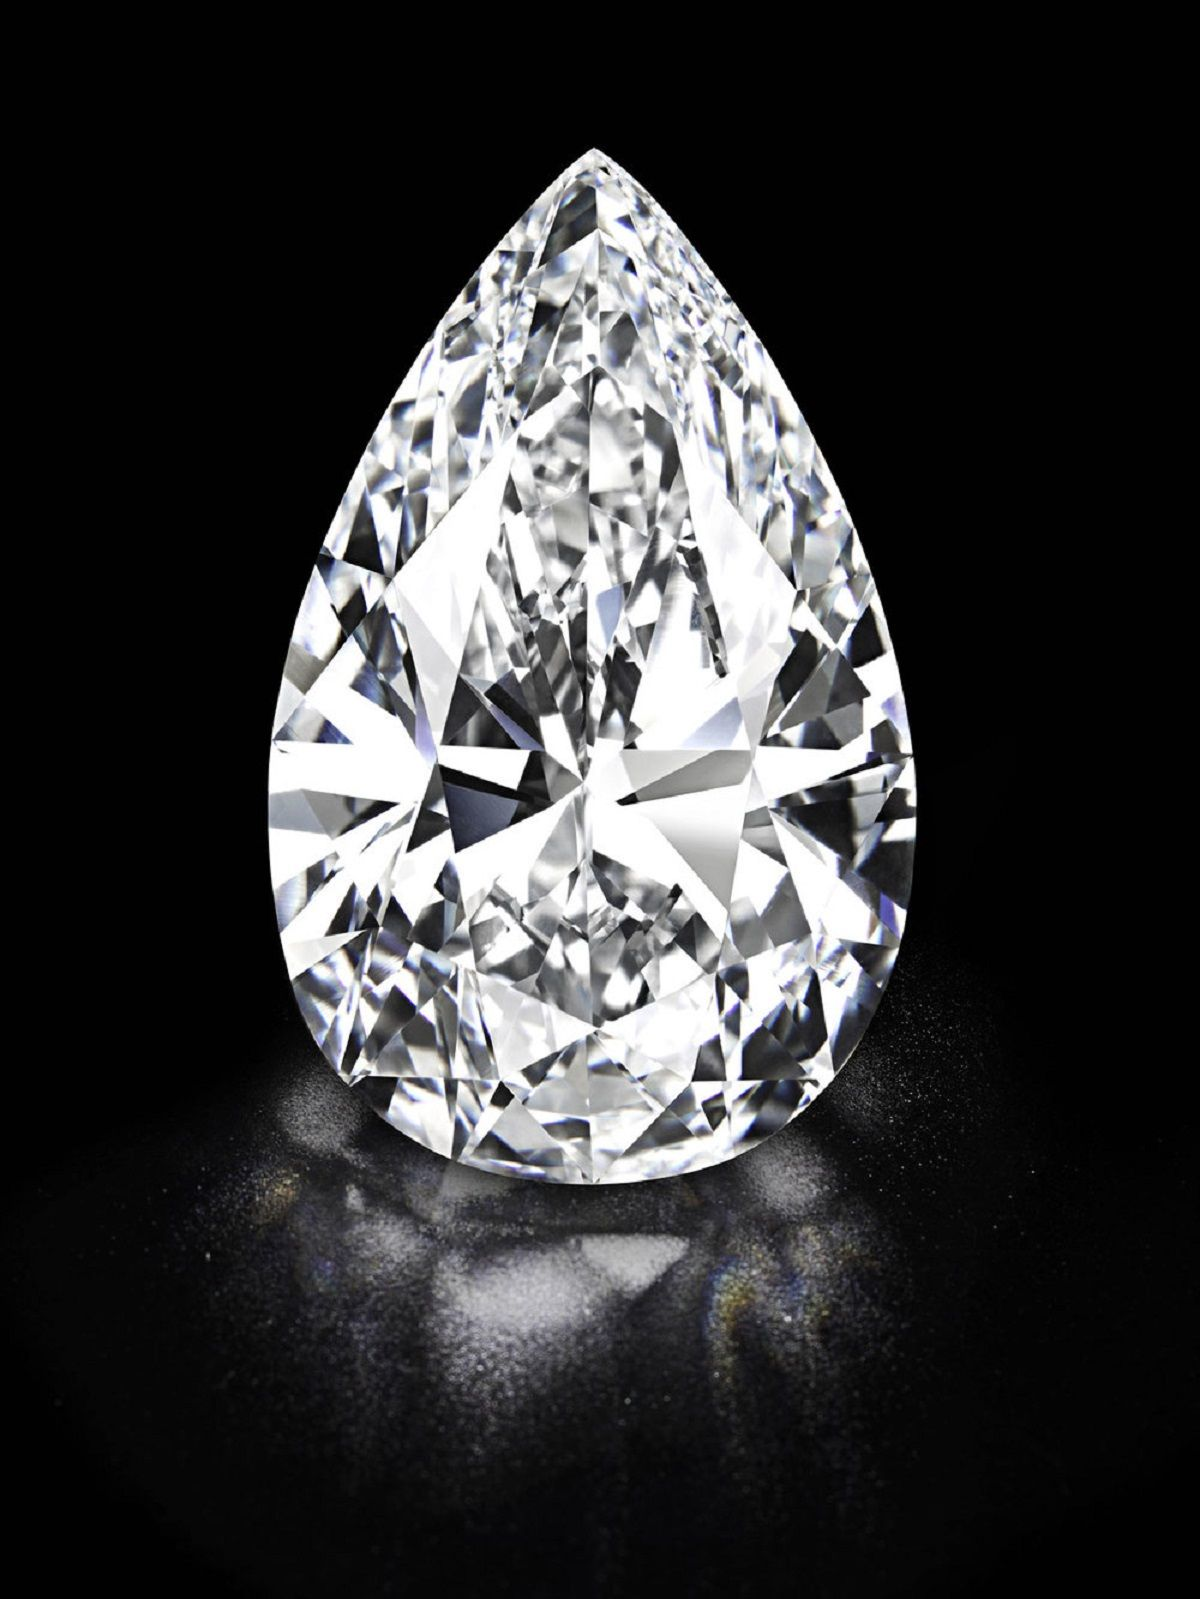 Largest Pear Shape Diamond in the World - Shira diamonds